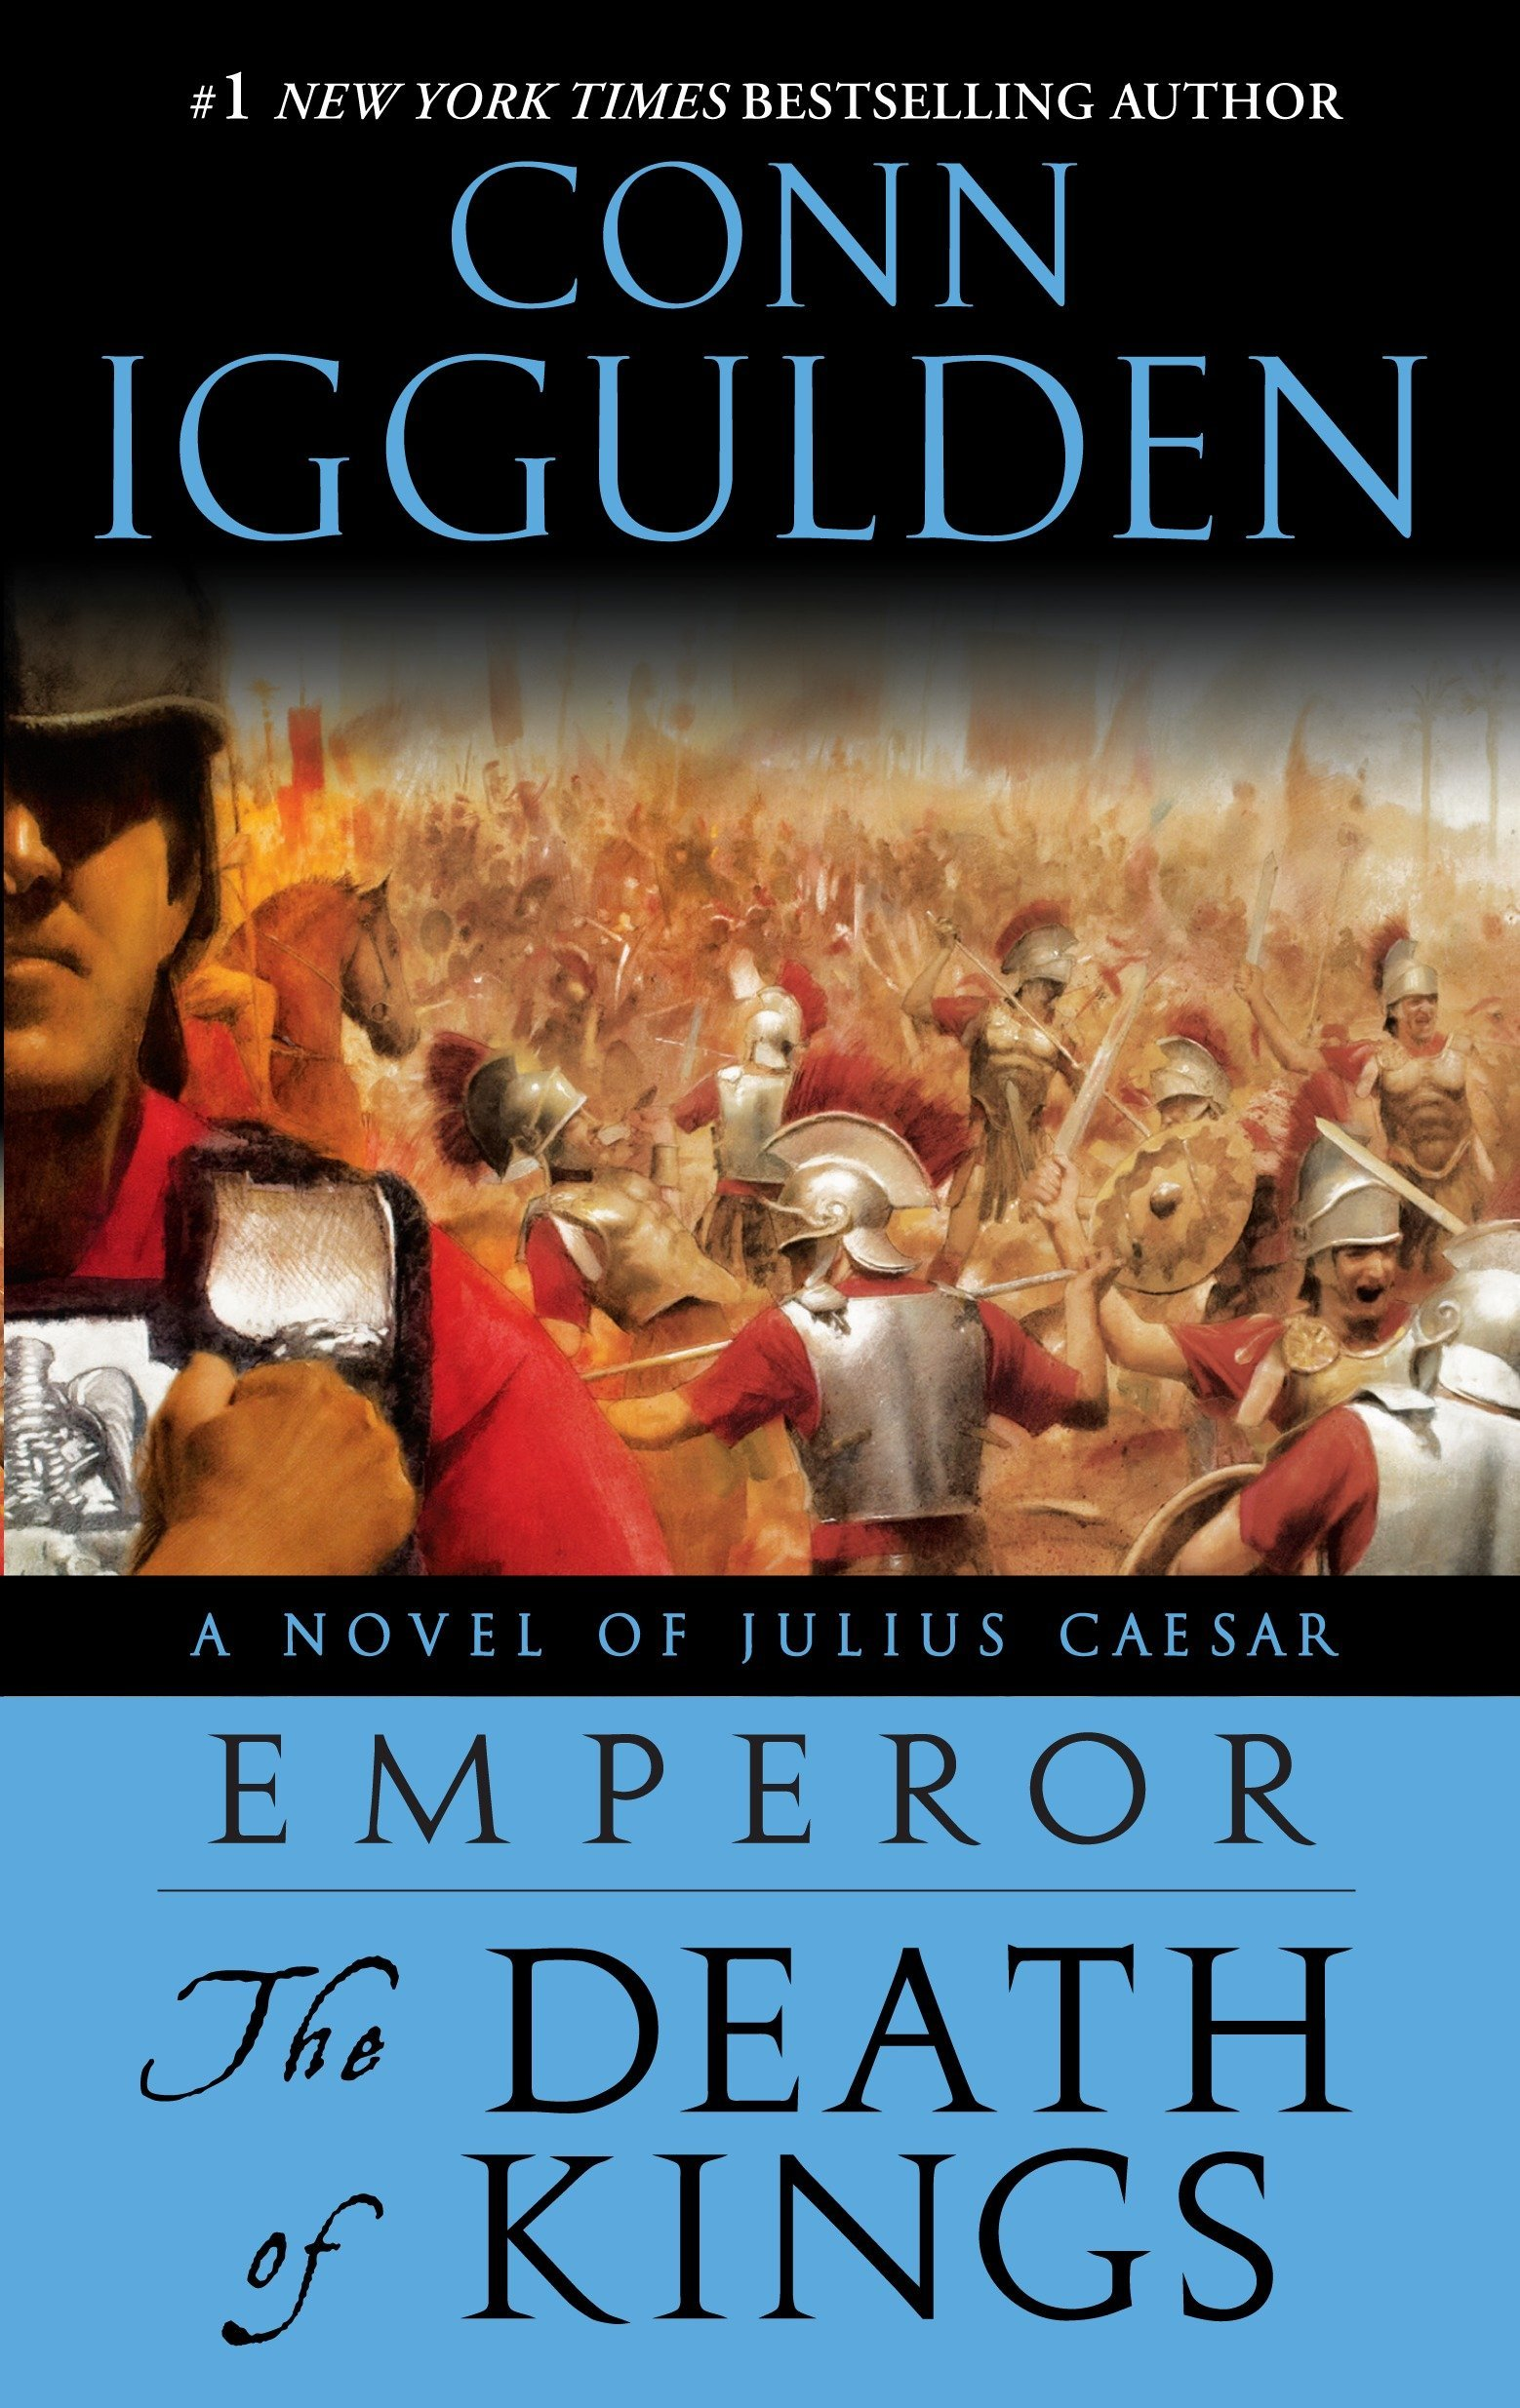 Download The Death of Kings (Emperor, Book 2) PDF